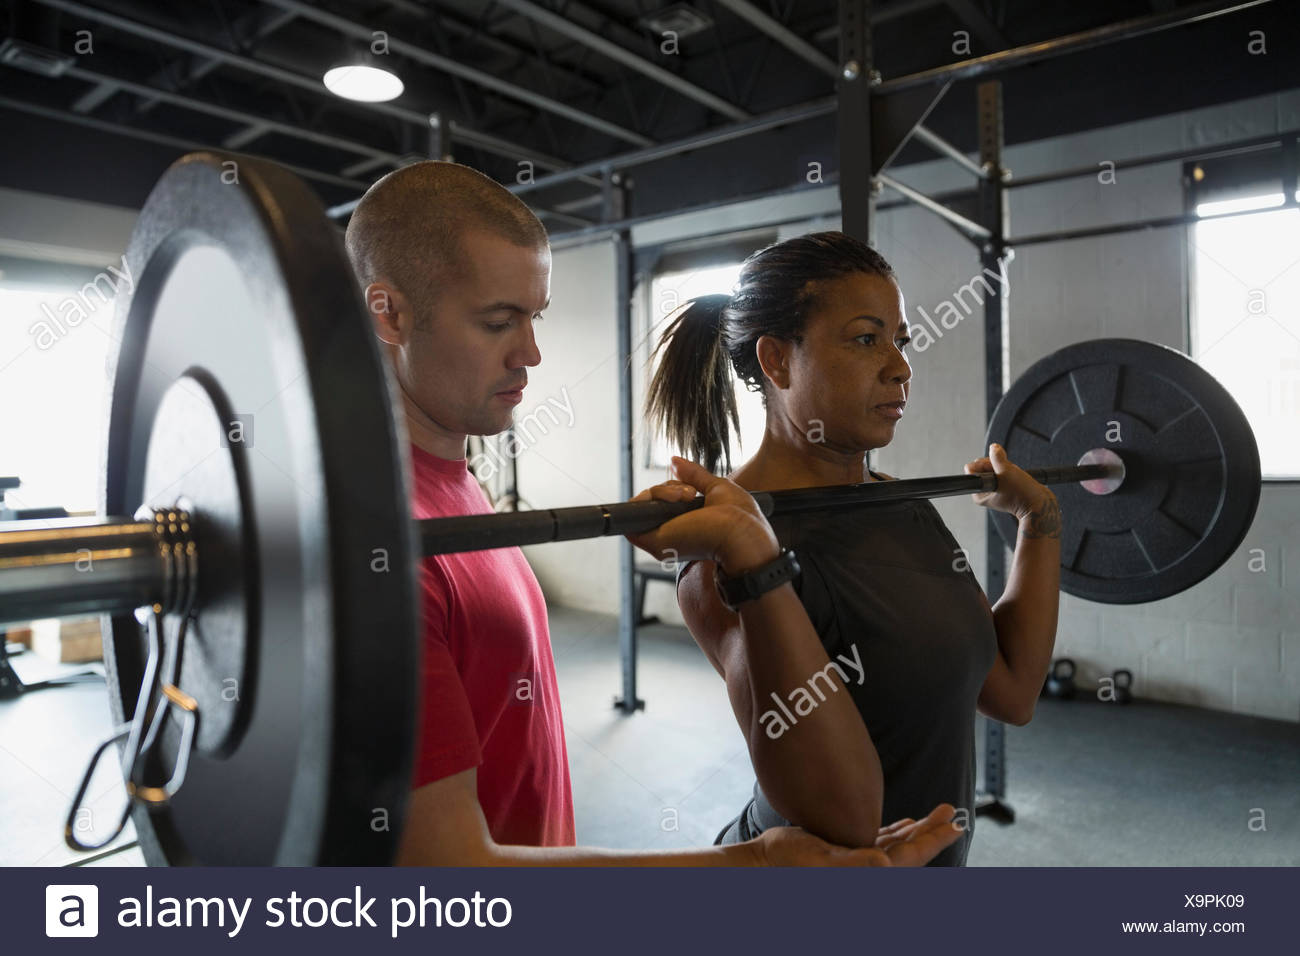 Personal trainer guiding woman weightlifting barbell Stock Photo